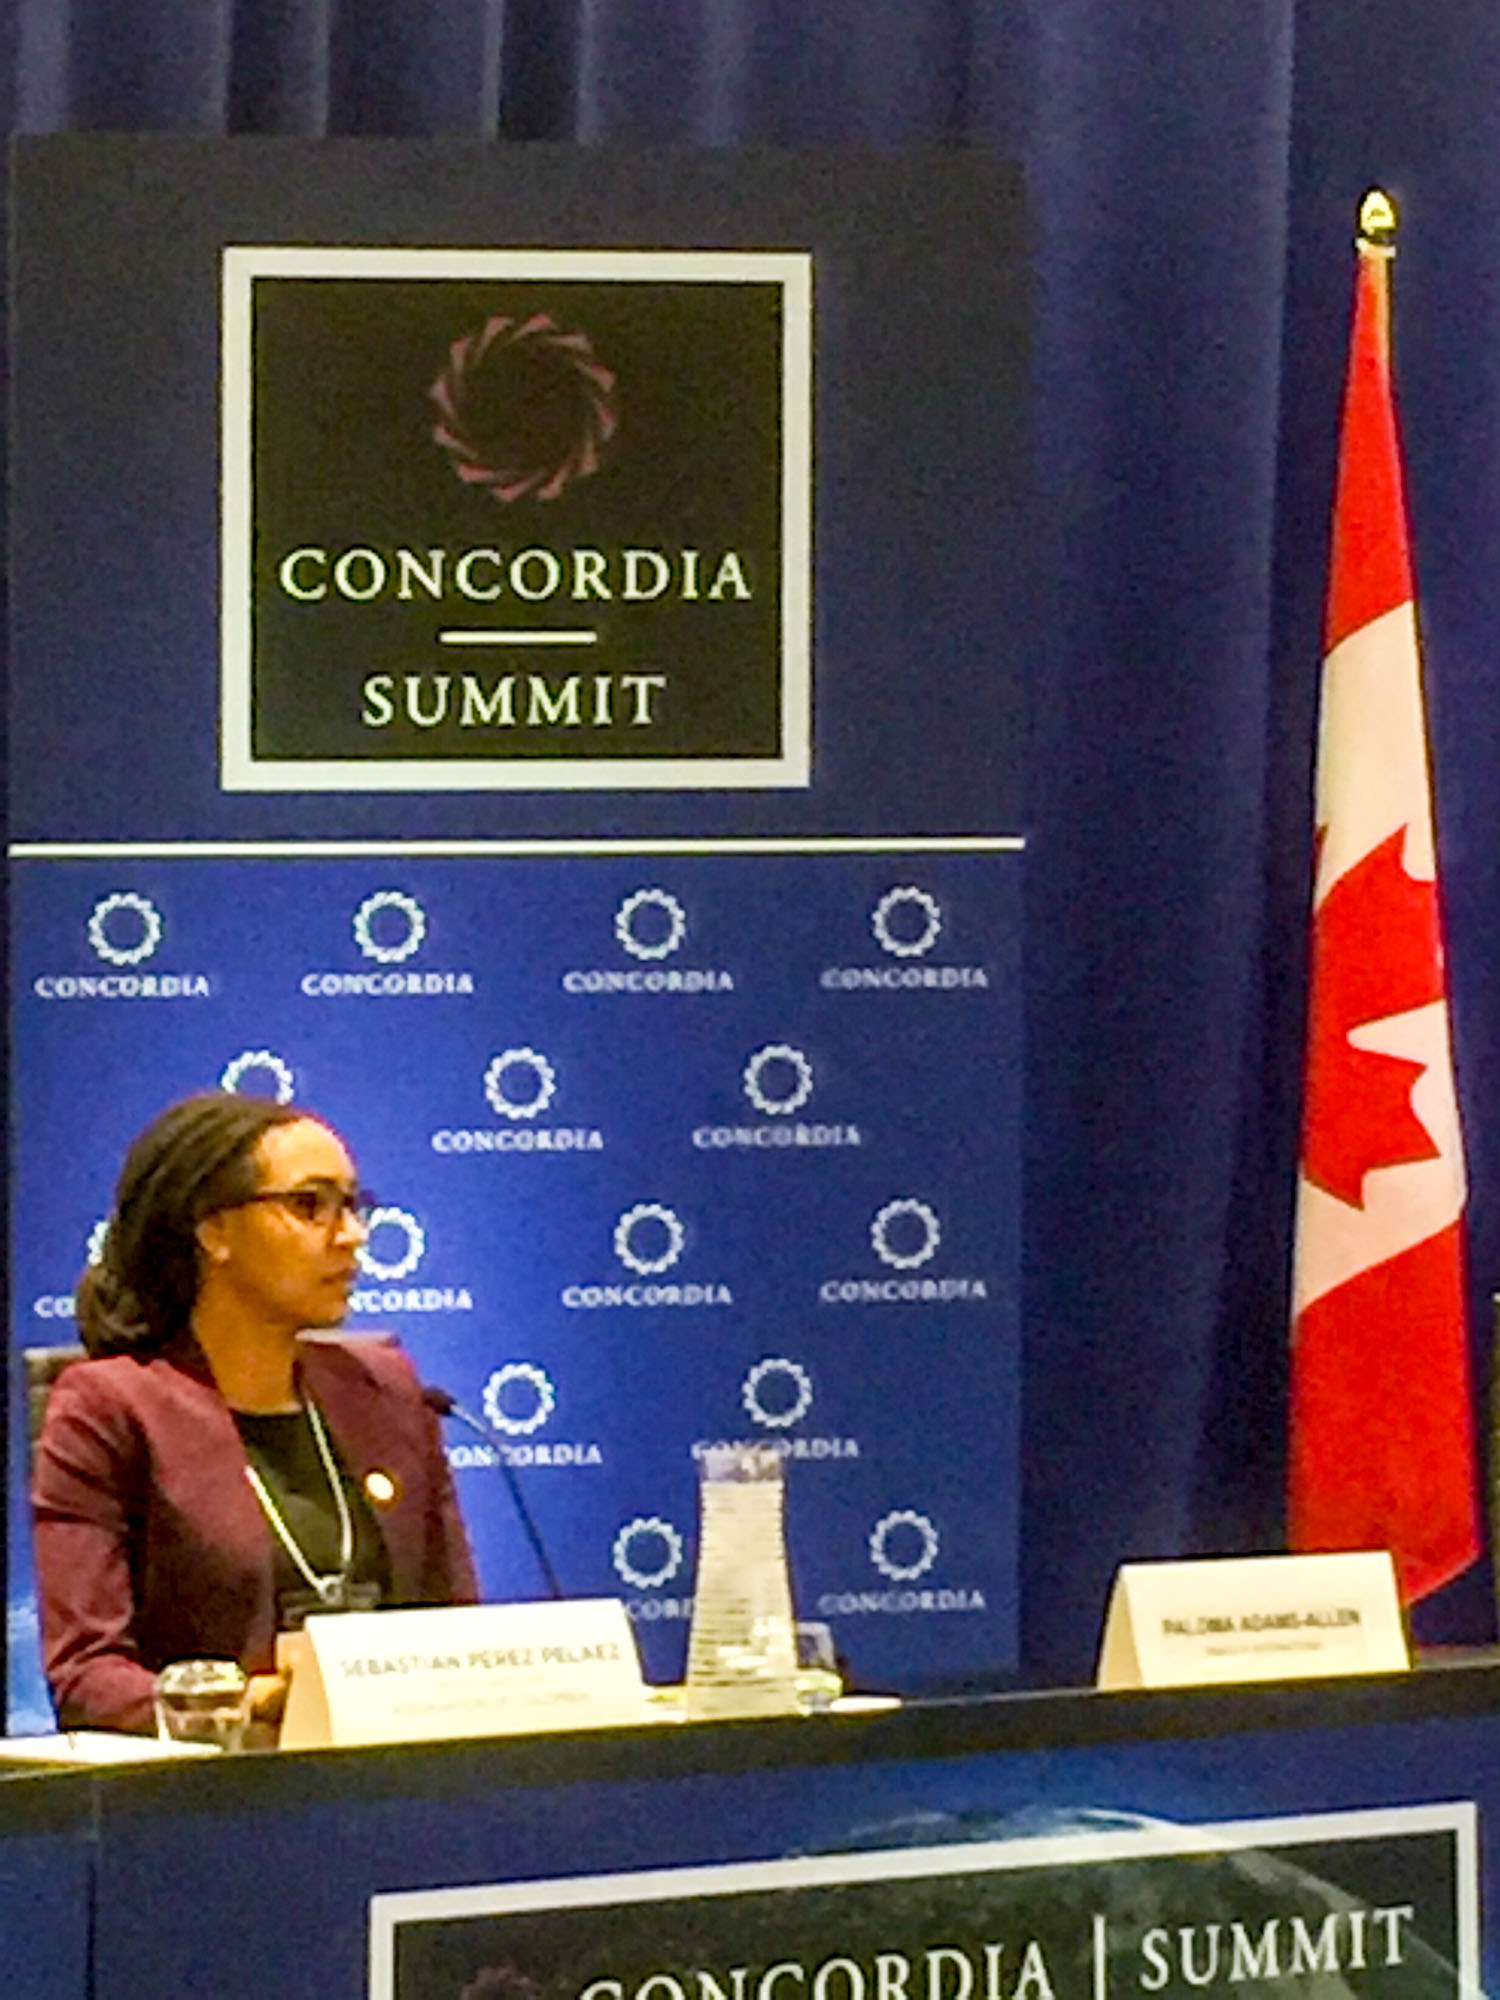 Instagram: Paloma Adams-Allen, senior director, private sector partnerships, discussed security and governance in Latin America with business leaders today at #Concordia16 @ConcordiaSummit